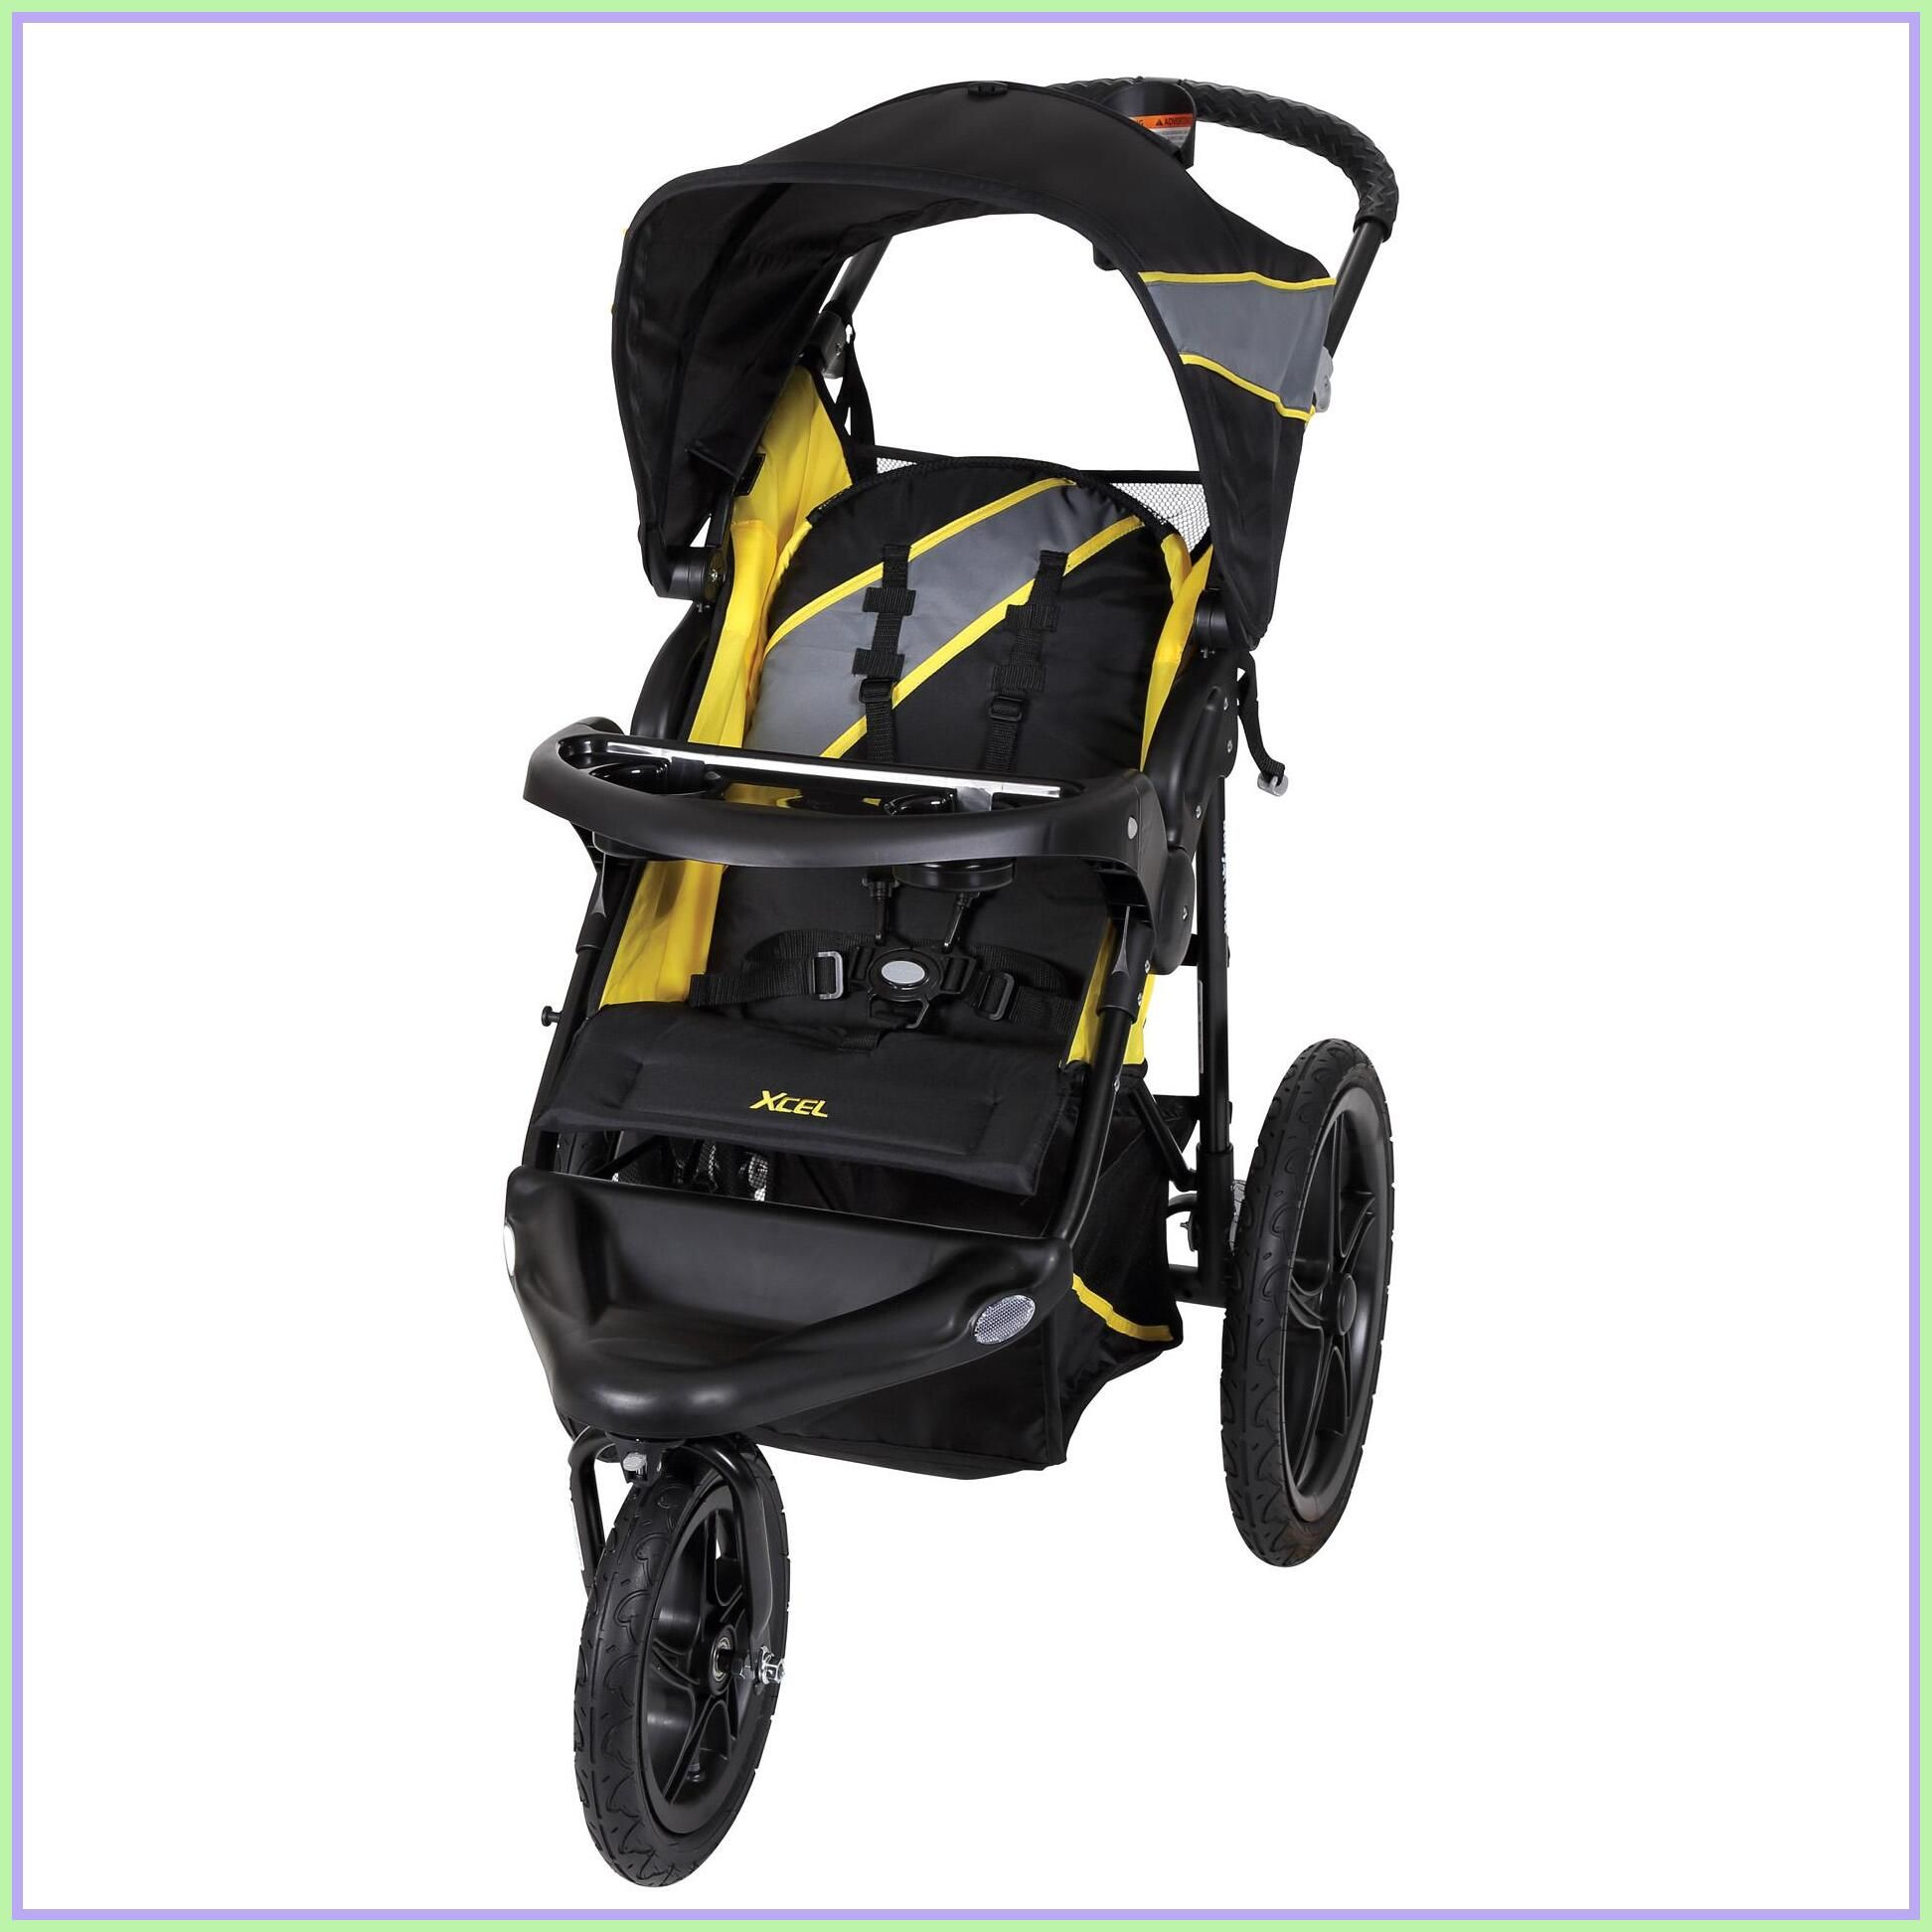 109 reference of baby trend stroller pink in 2020 Baby